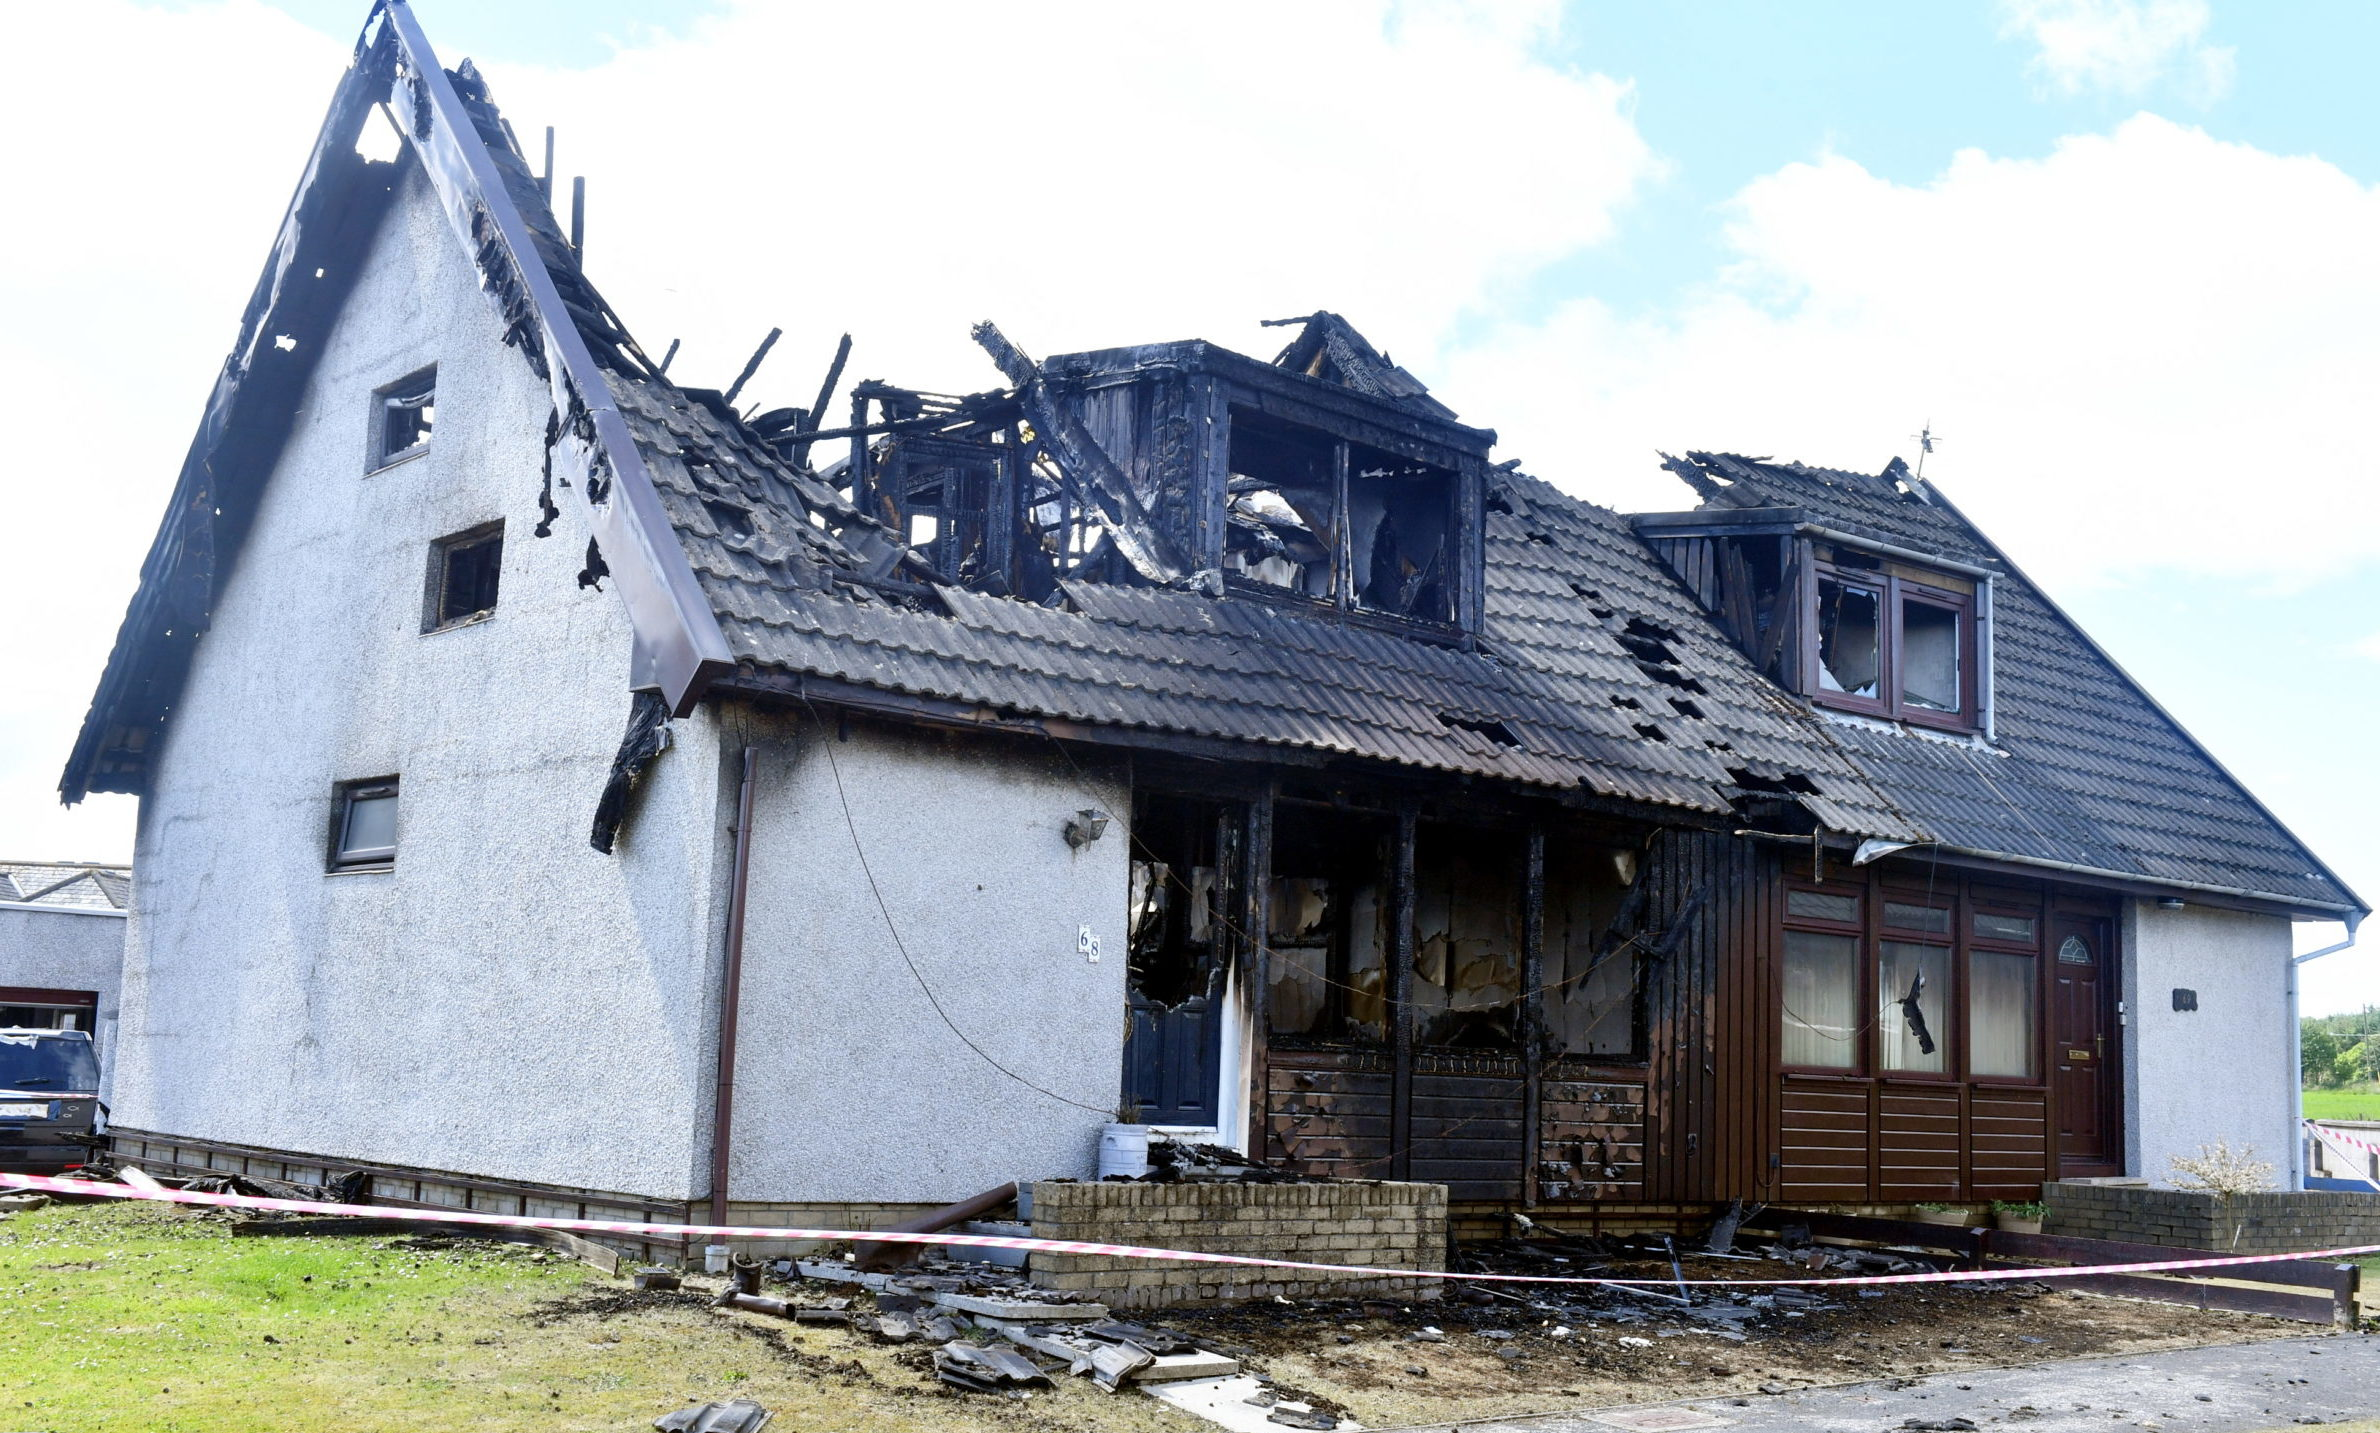 The aftermath of the fire in St Cyrus. Picture by Chris Sumner.